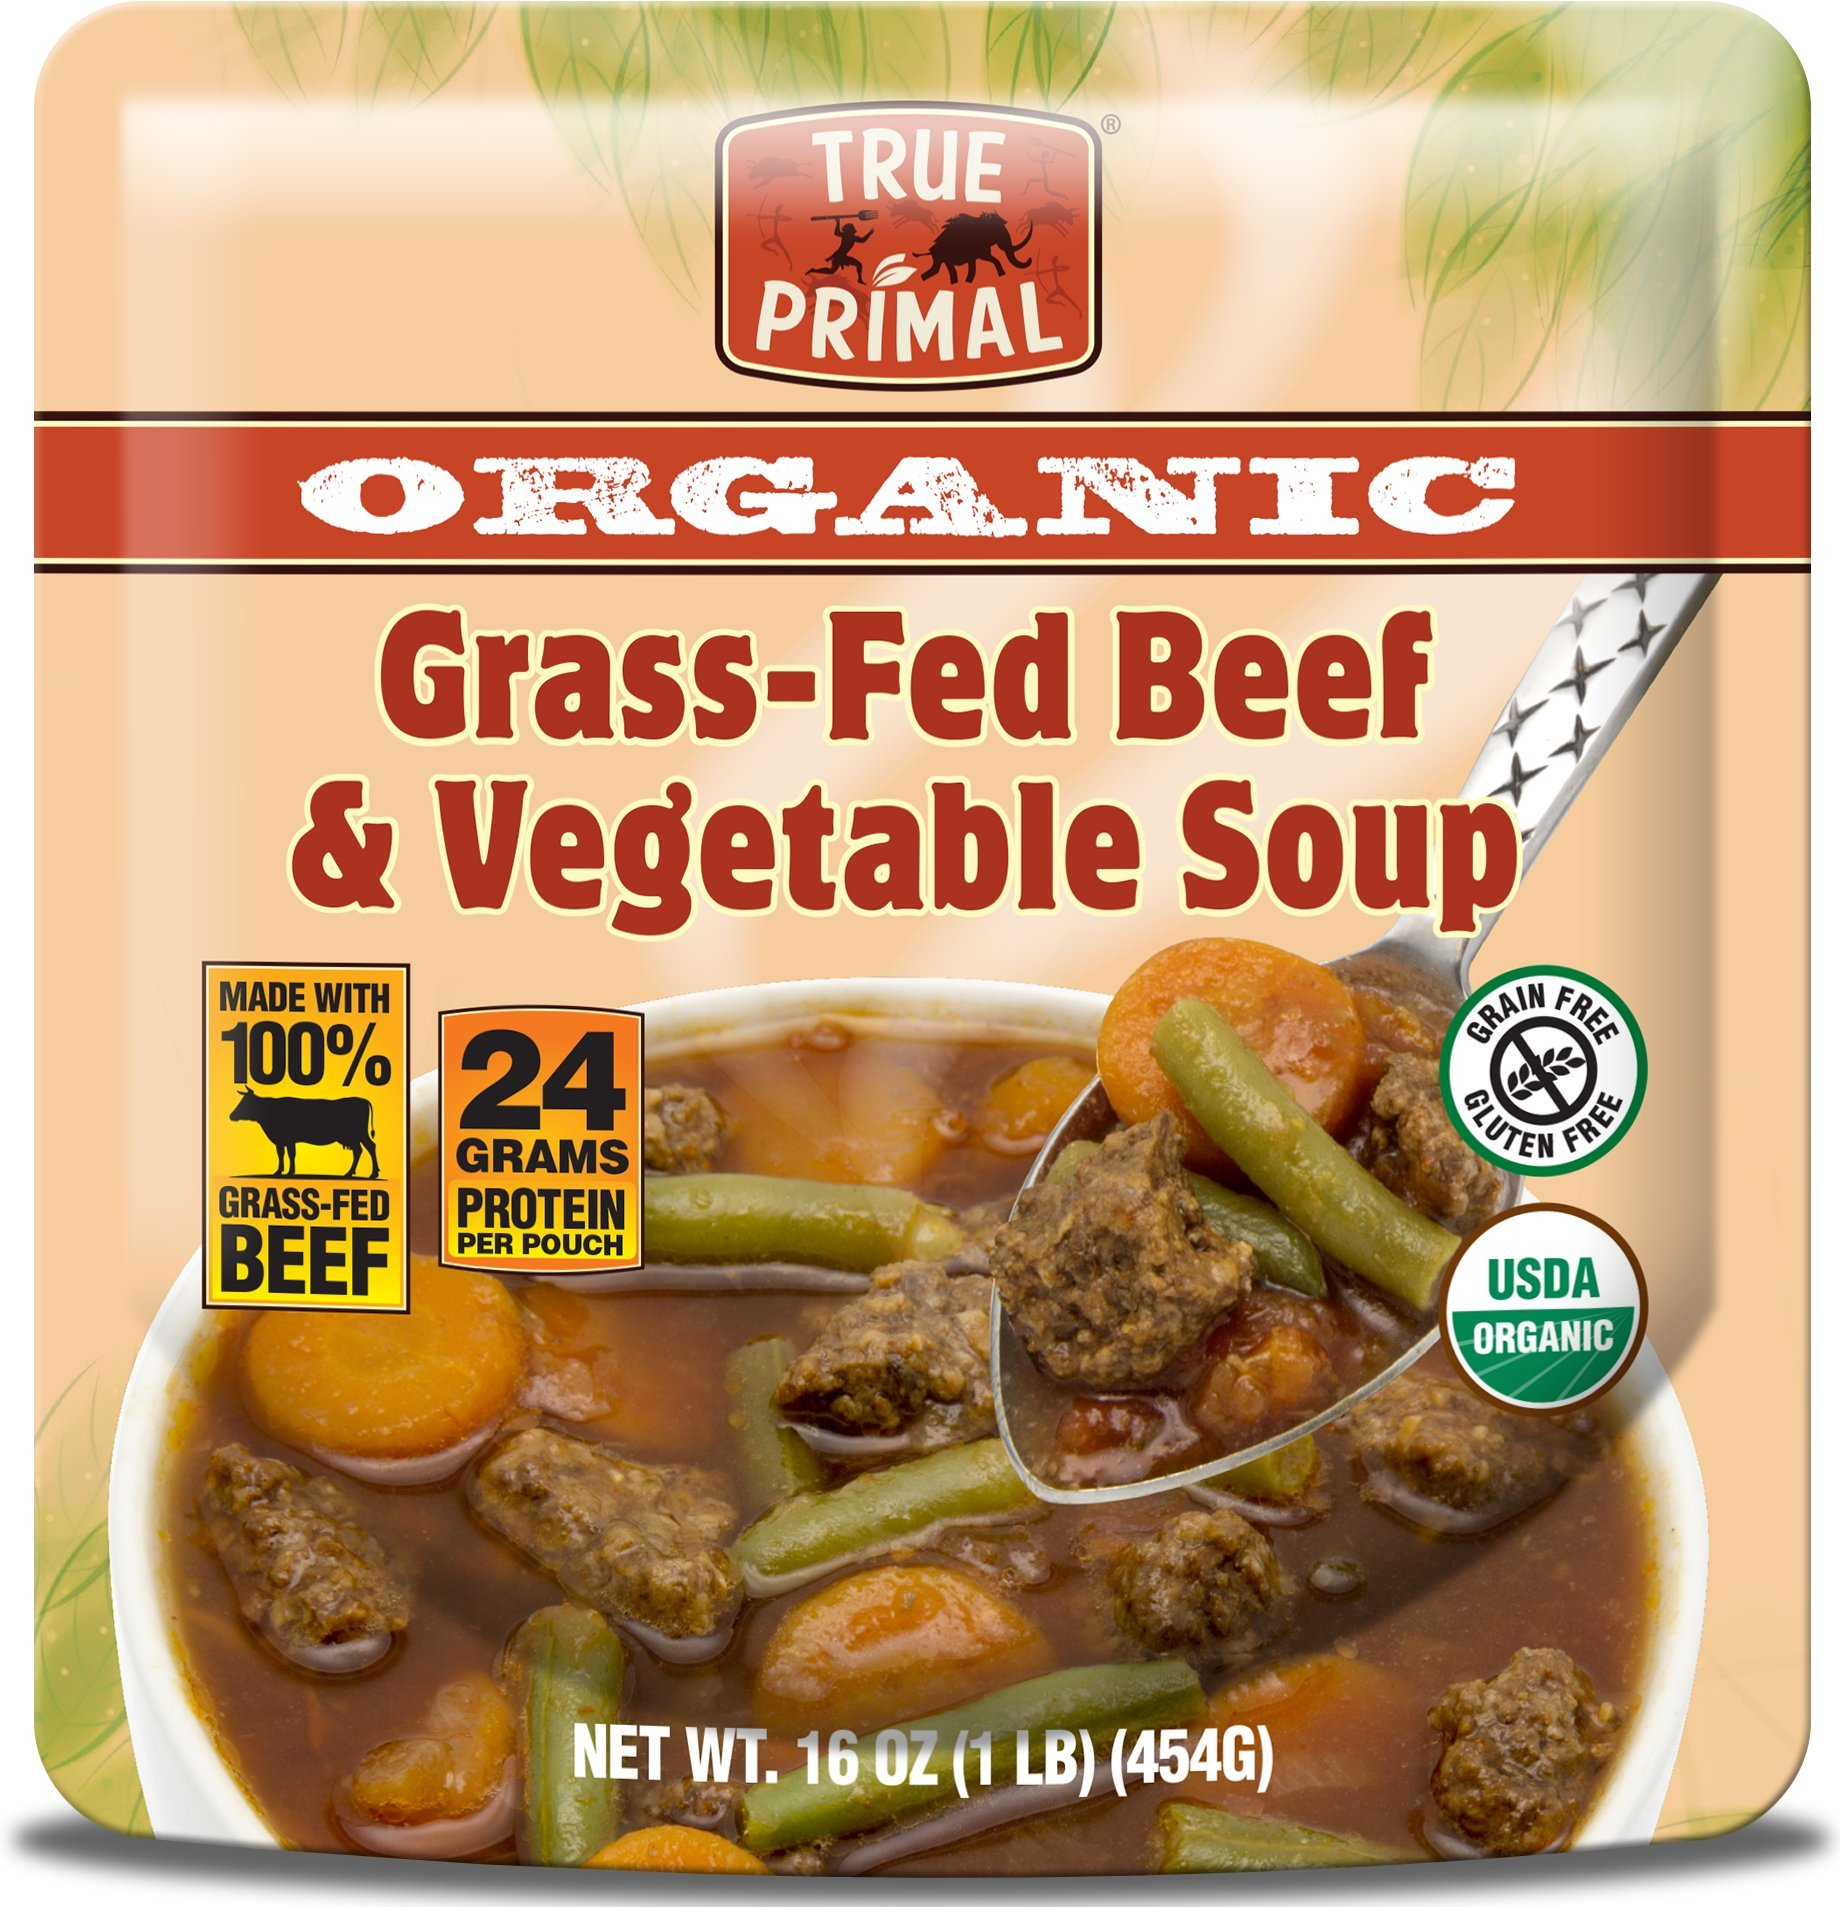 True Primal Organic Grass-Fed Beef & Vegetable Soup (Paleo, Gluten-free, Grain-free, Microwavable) 10-pack by True Primal